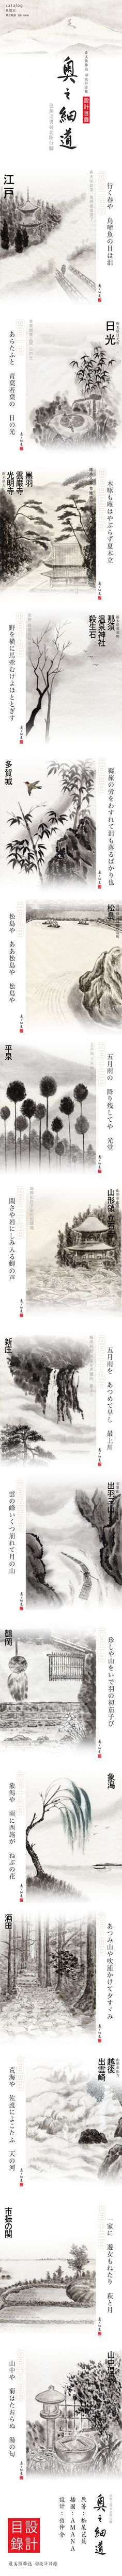 """Oku no Hosomichi (奥の細道, おくのほそ道 - """"Narrow road to/of the interior""""), is a major work of haibun by the Japanese poet Matsuo Bashō considered """"one of the major texts of classical Japanese literature."""""""